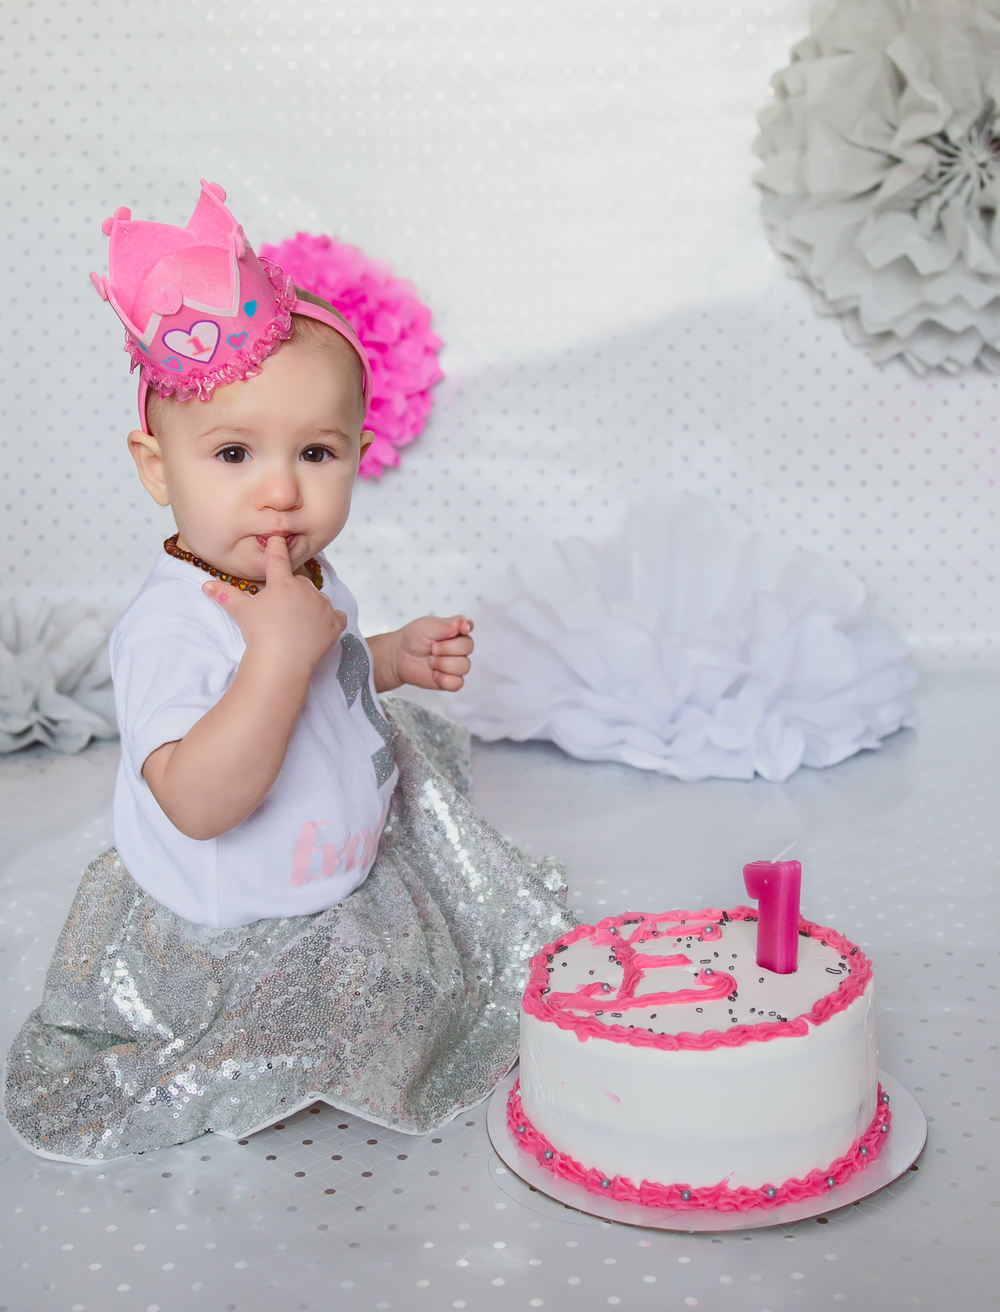 Cake Smash Session in Kennesaw, GA